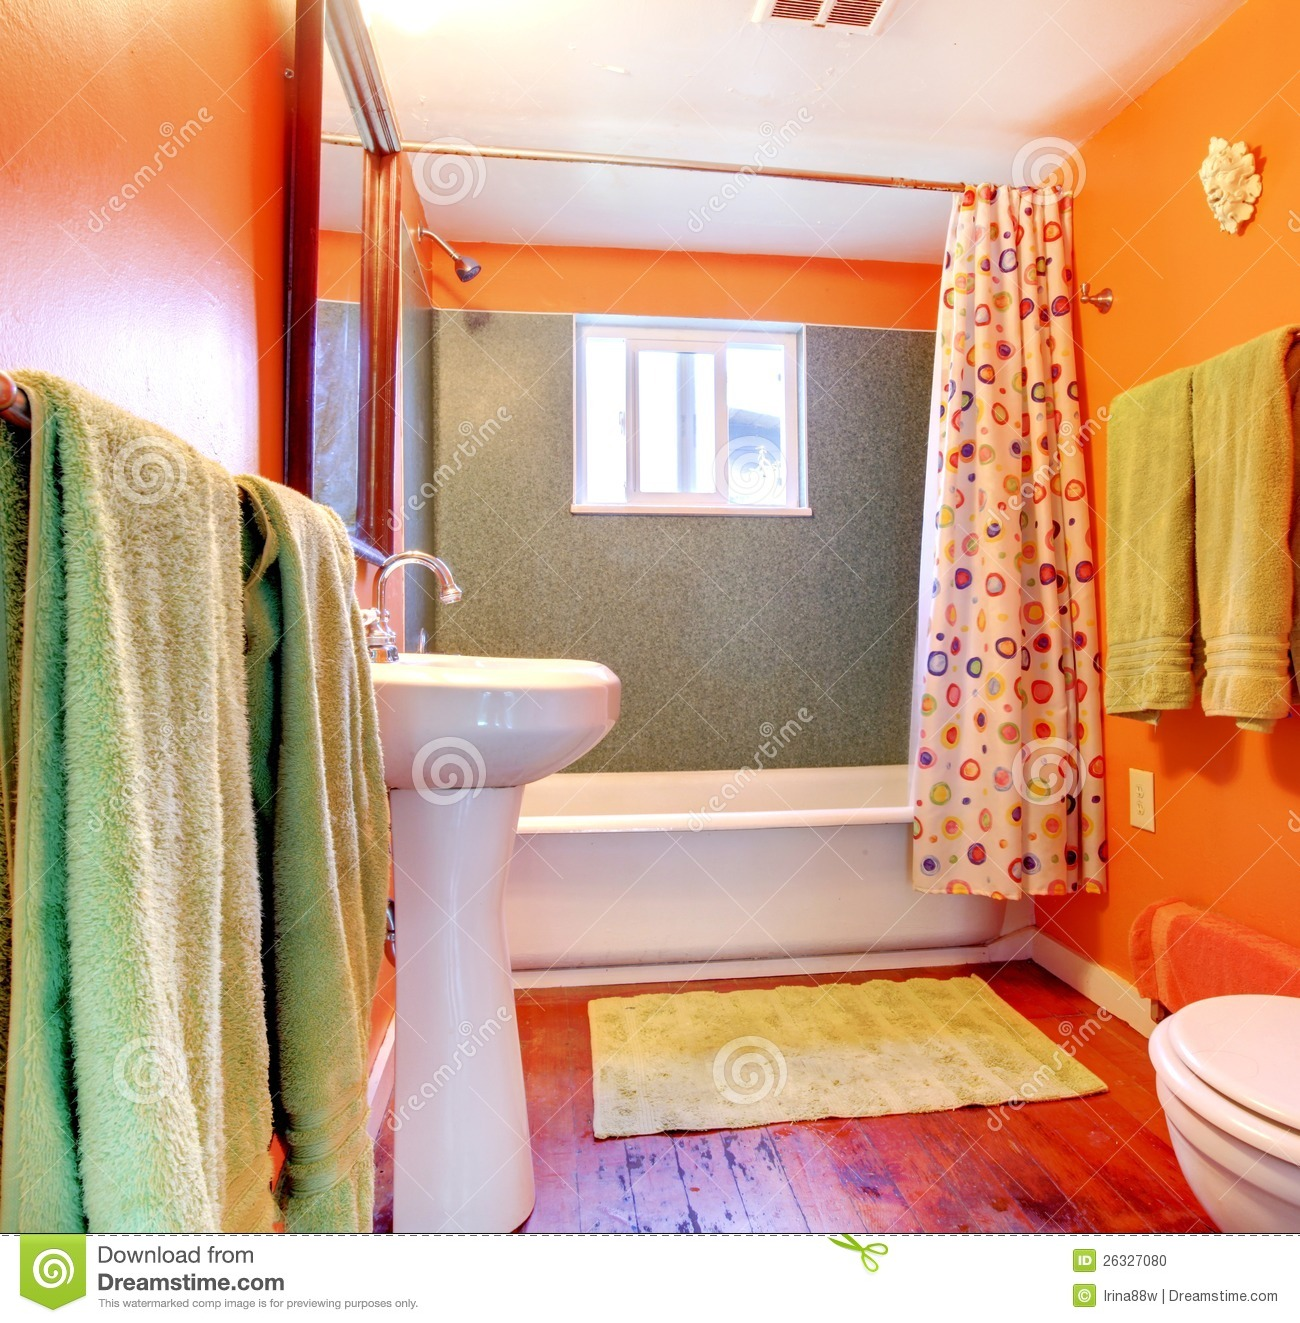 Cuartos De Baño Con Tina:Bathrooms with Green and Orange